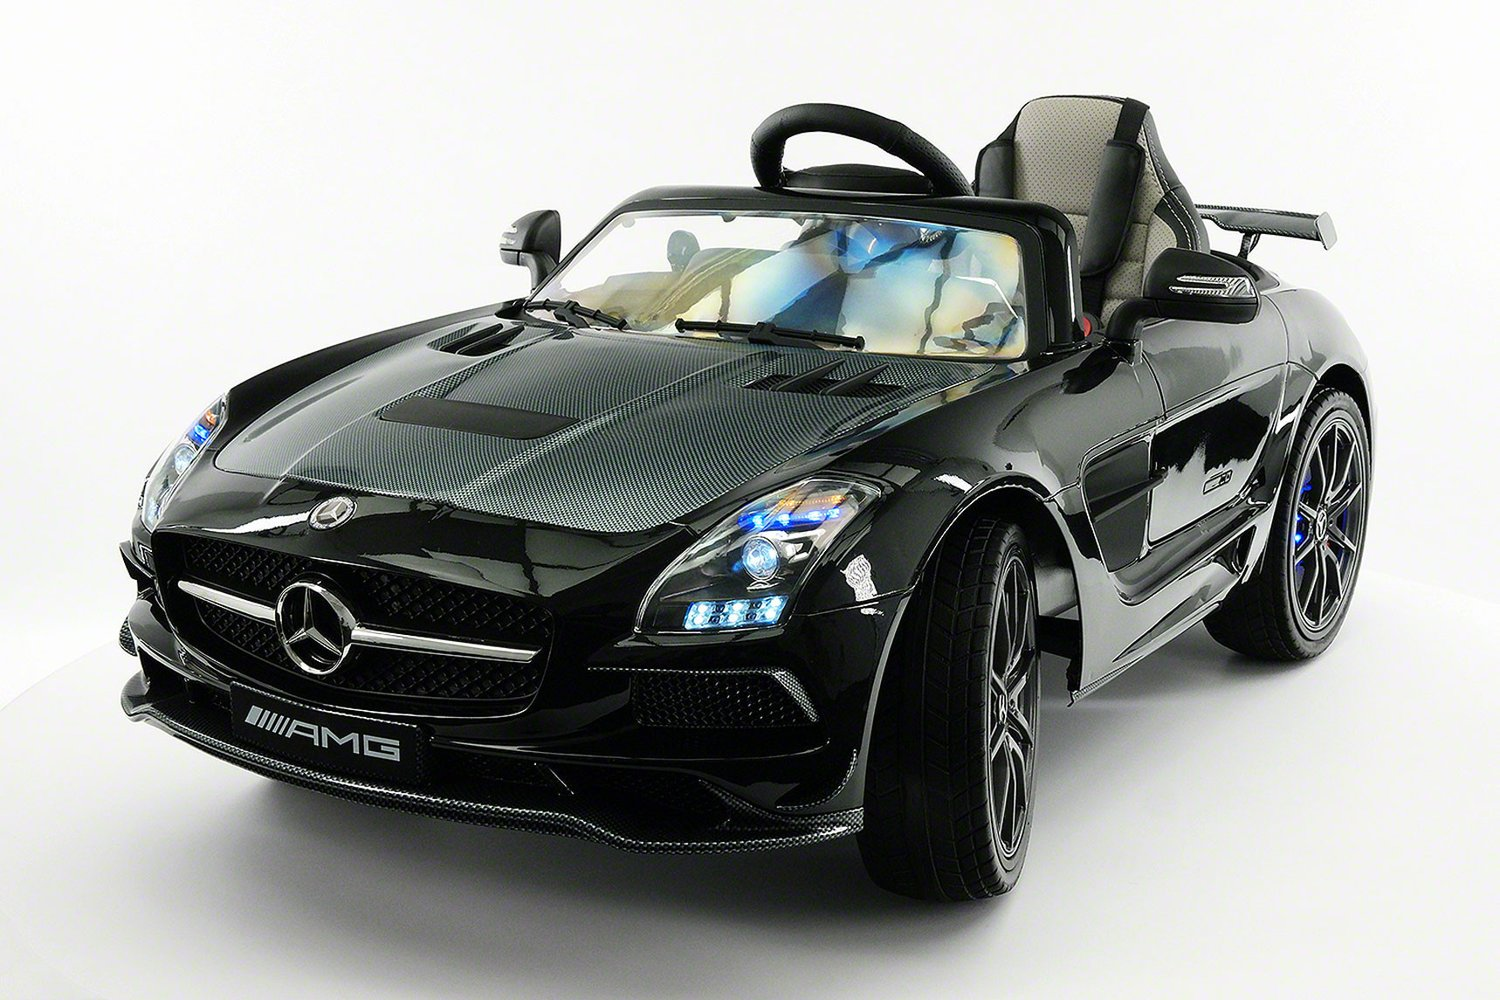 Mercedes Sls Amg Final Edition 12v Kids Ride On Car With